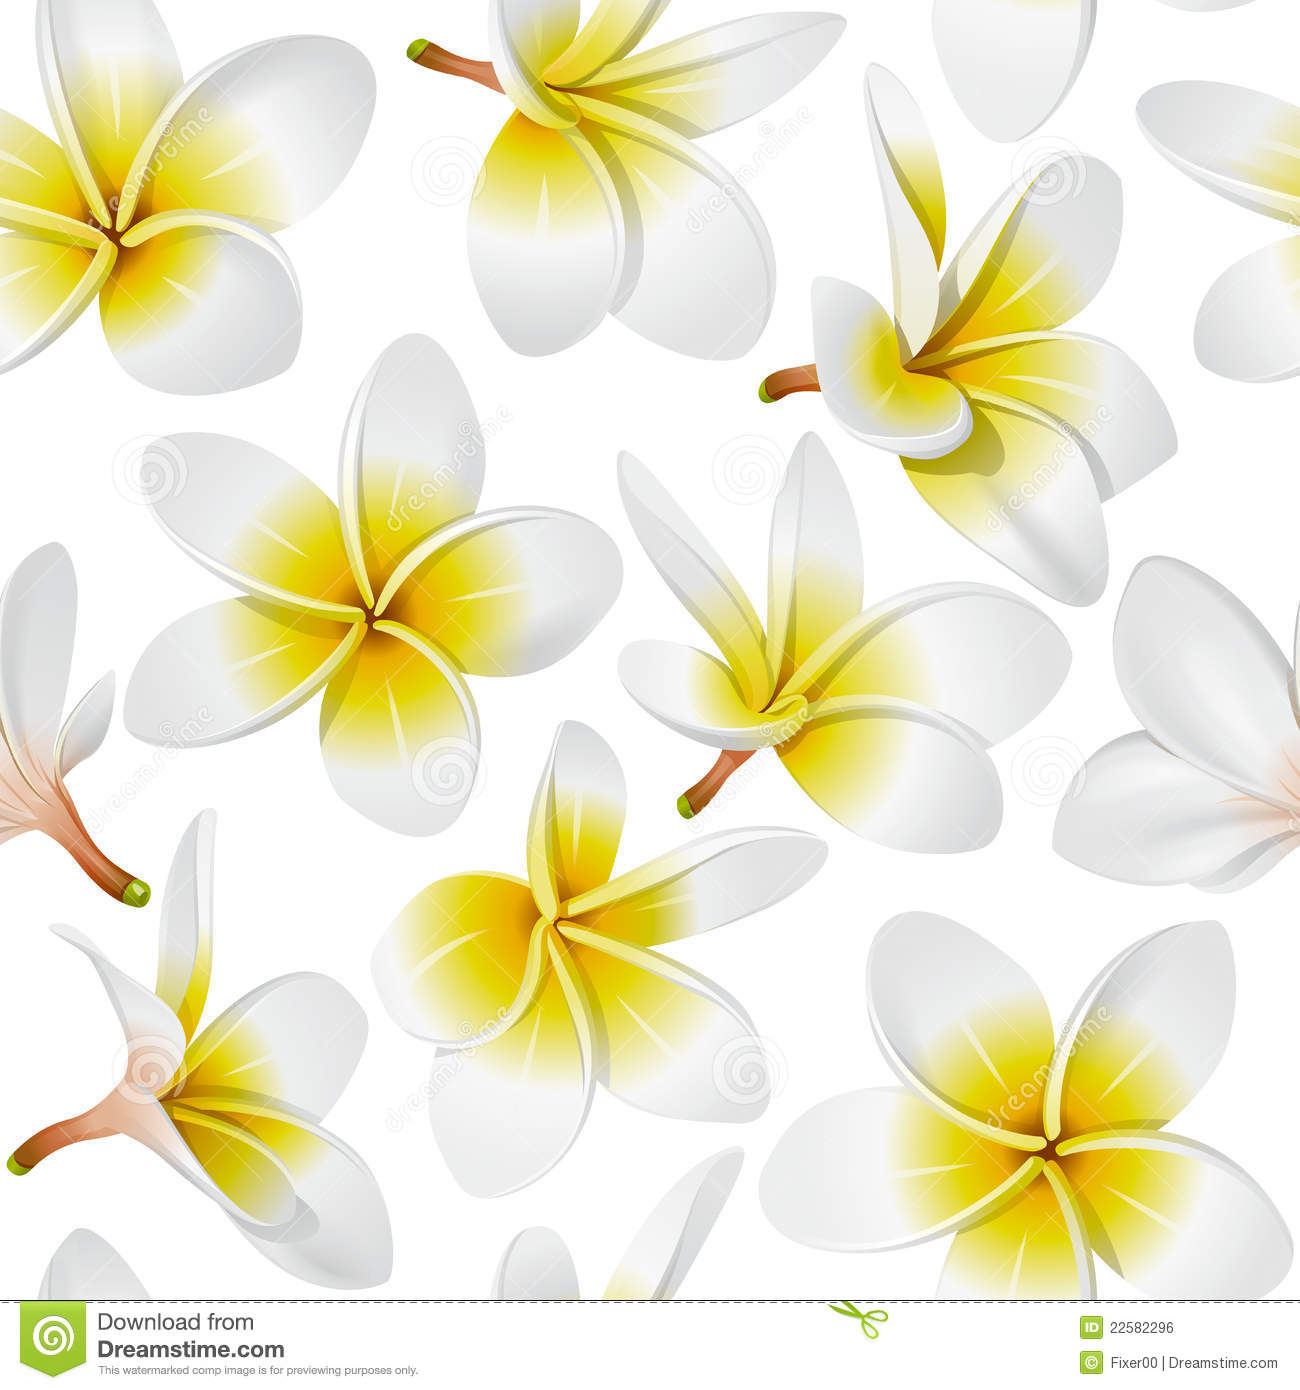 Free pictures of tropical flowers graphic transparent download Tropical Flowers Seamless Pattern Royalty Free Stock Image - Image ... graphic transparent download